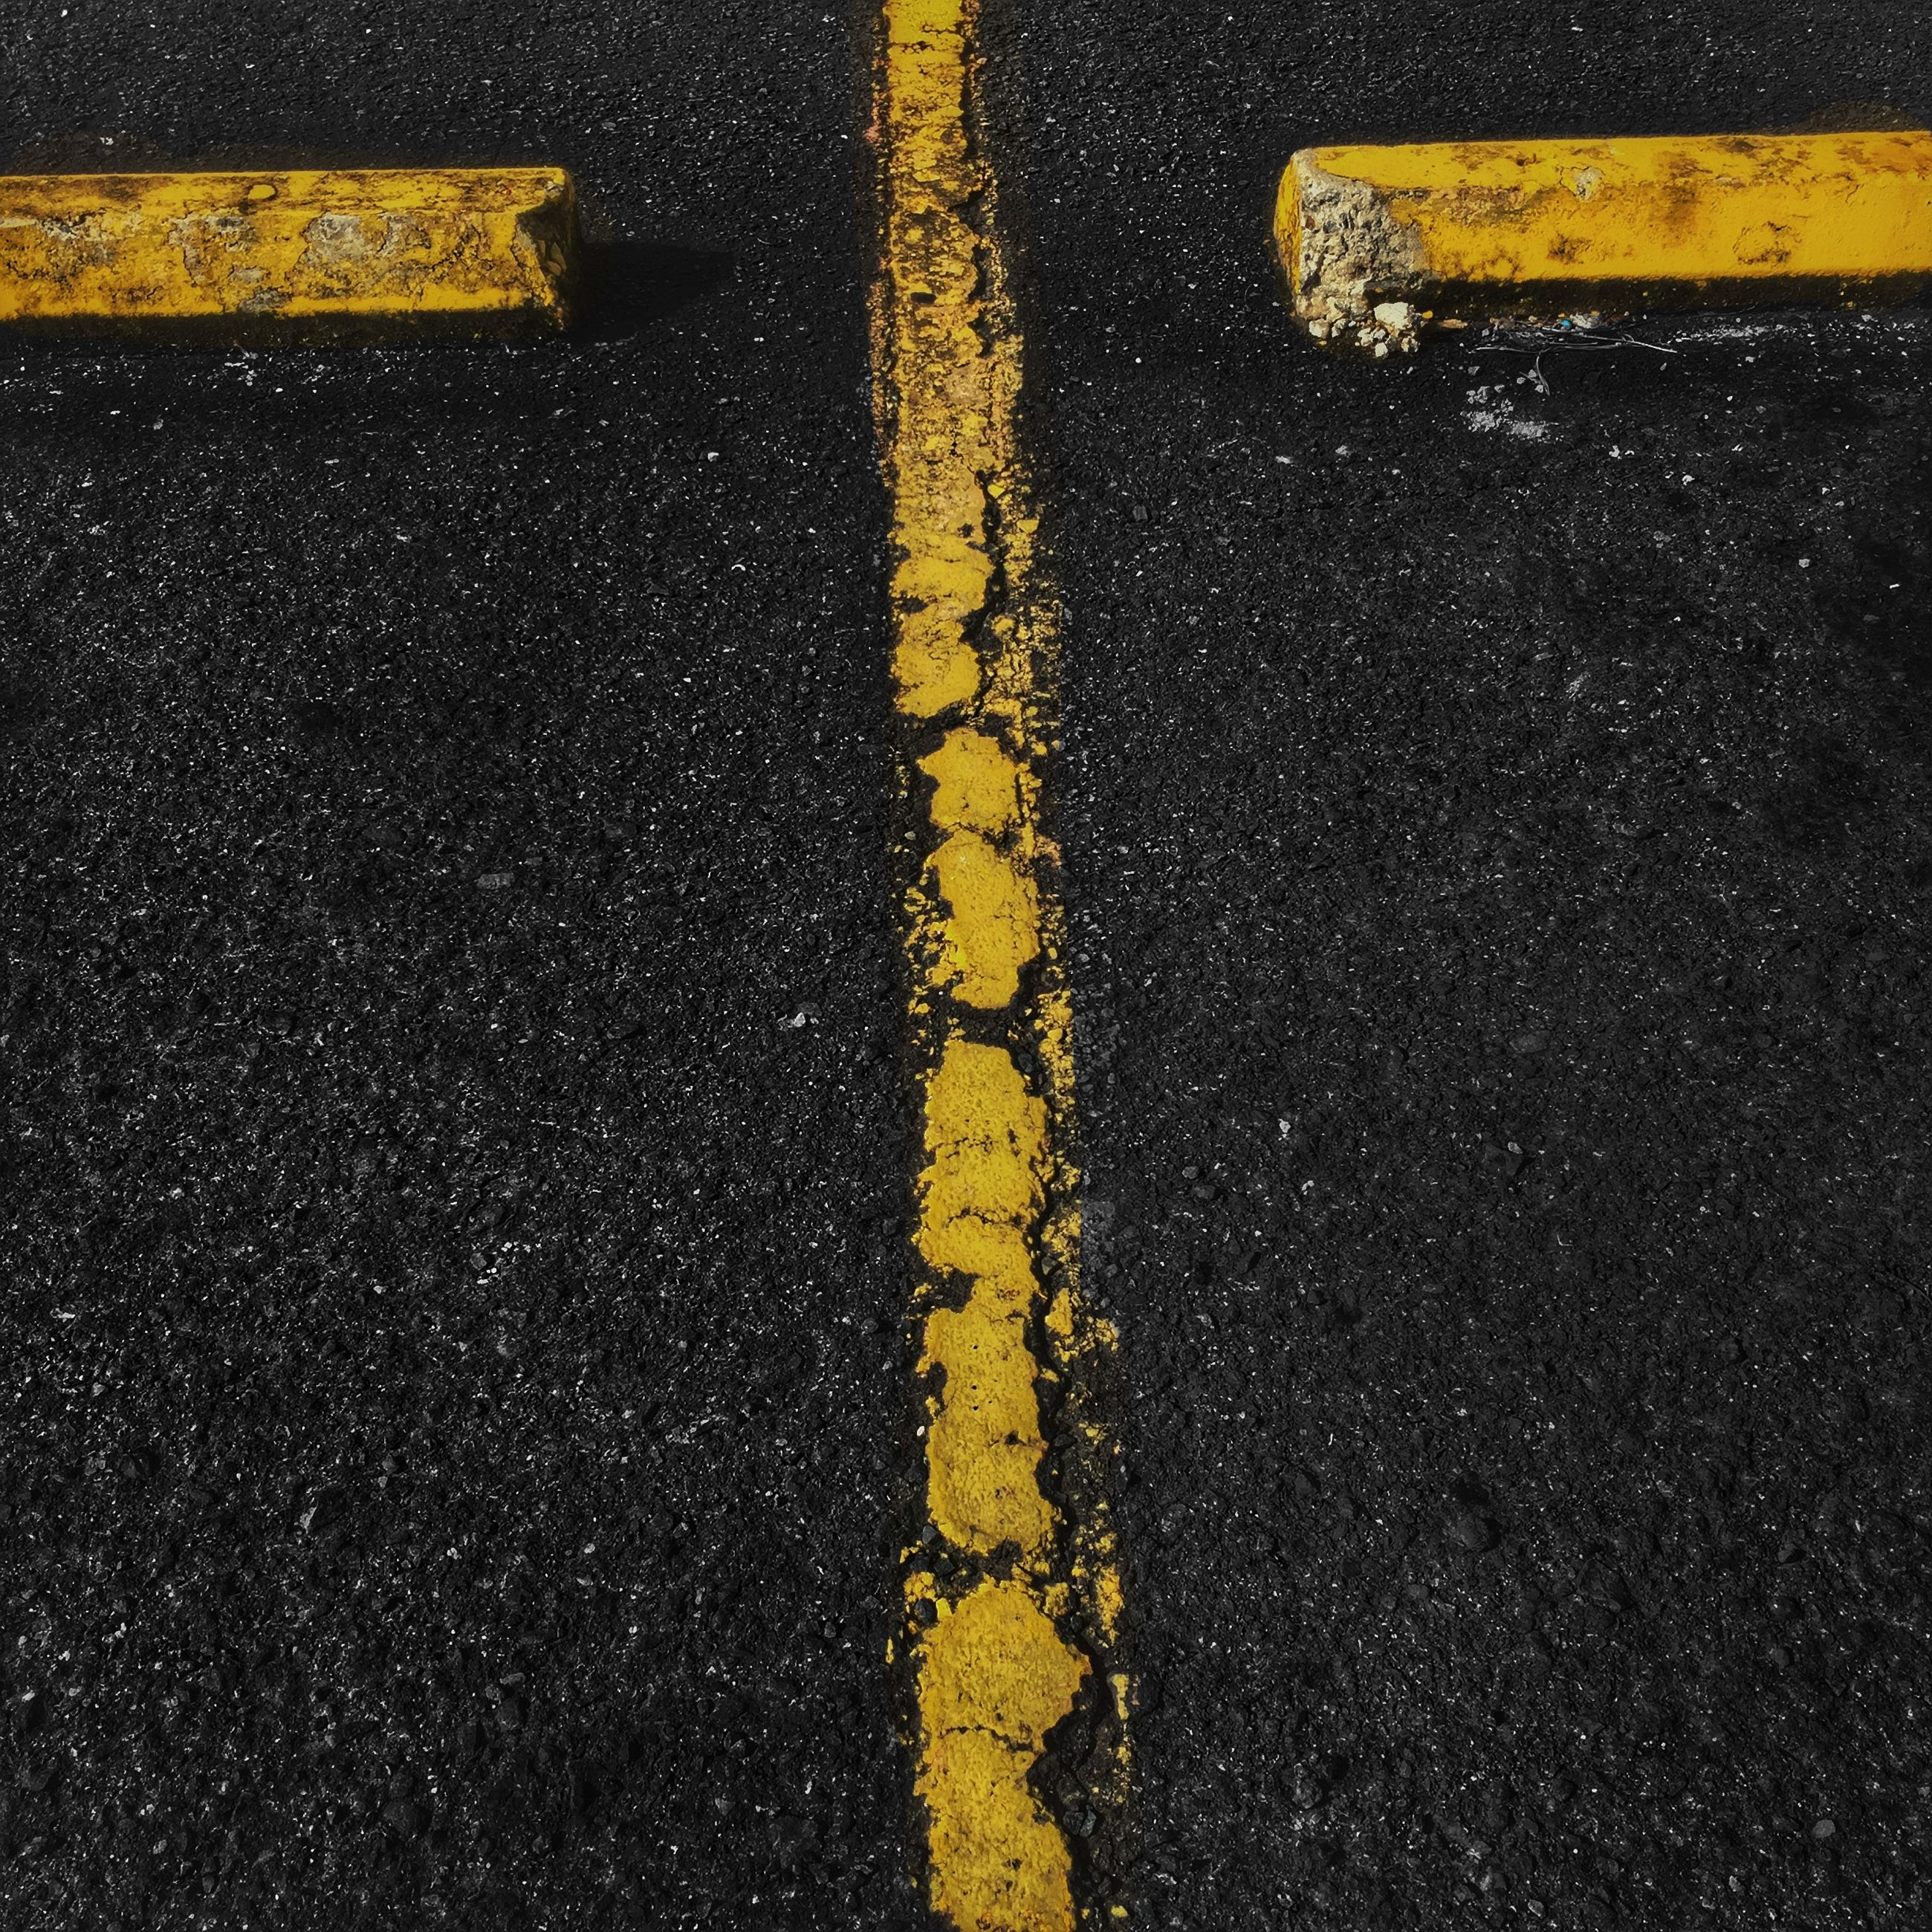 transportation, yellow, road marking, road, asphalt, street, guidance, communication, close-up, sign, road sign, direction, high angle view, car, arrow symbol, directional sign, outdoors, mode of transport, no people, text